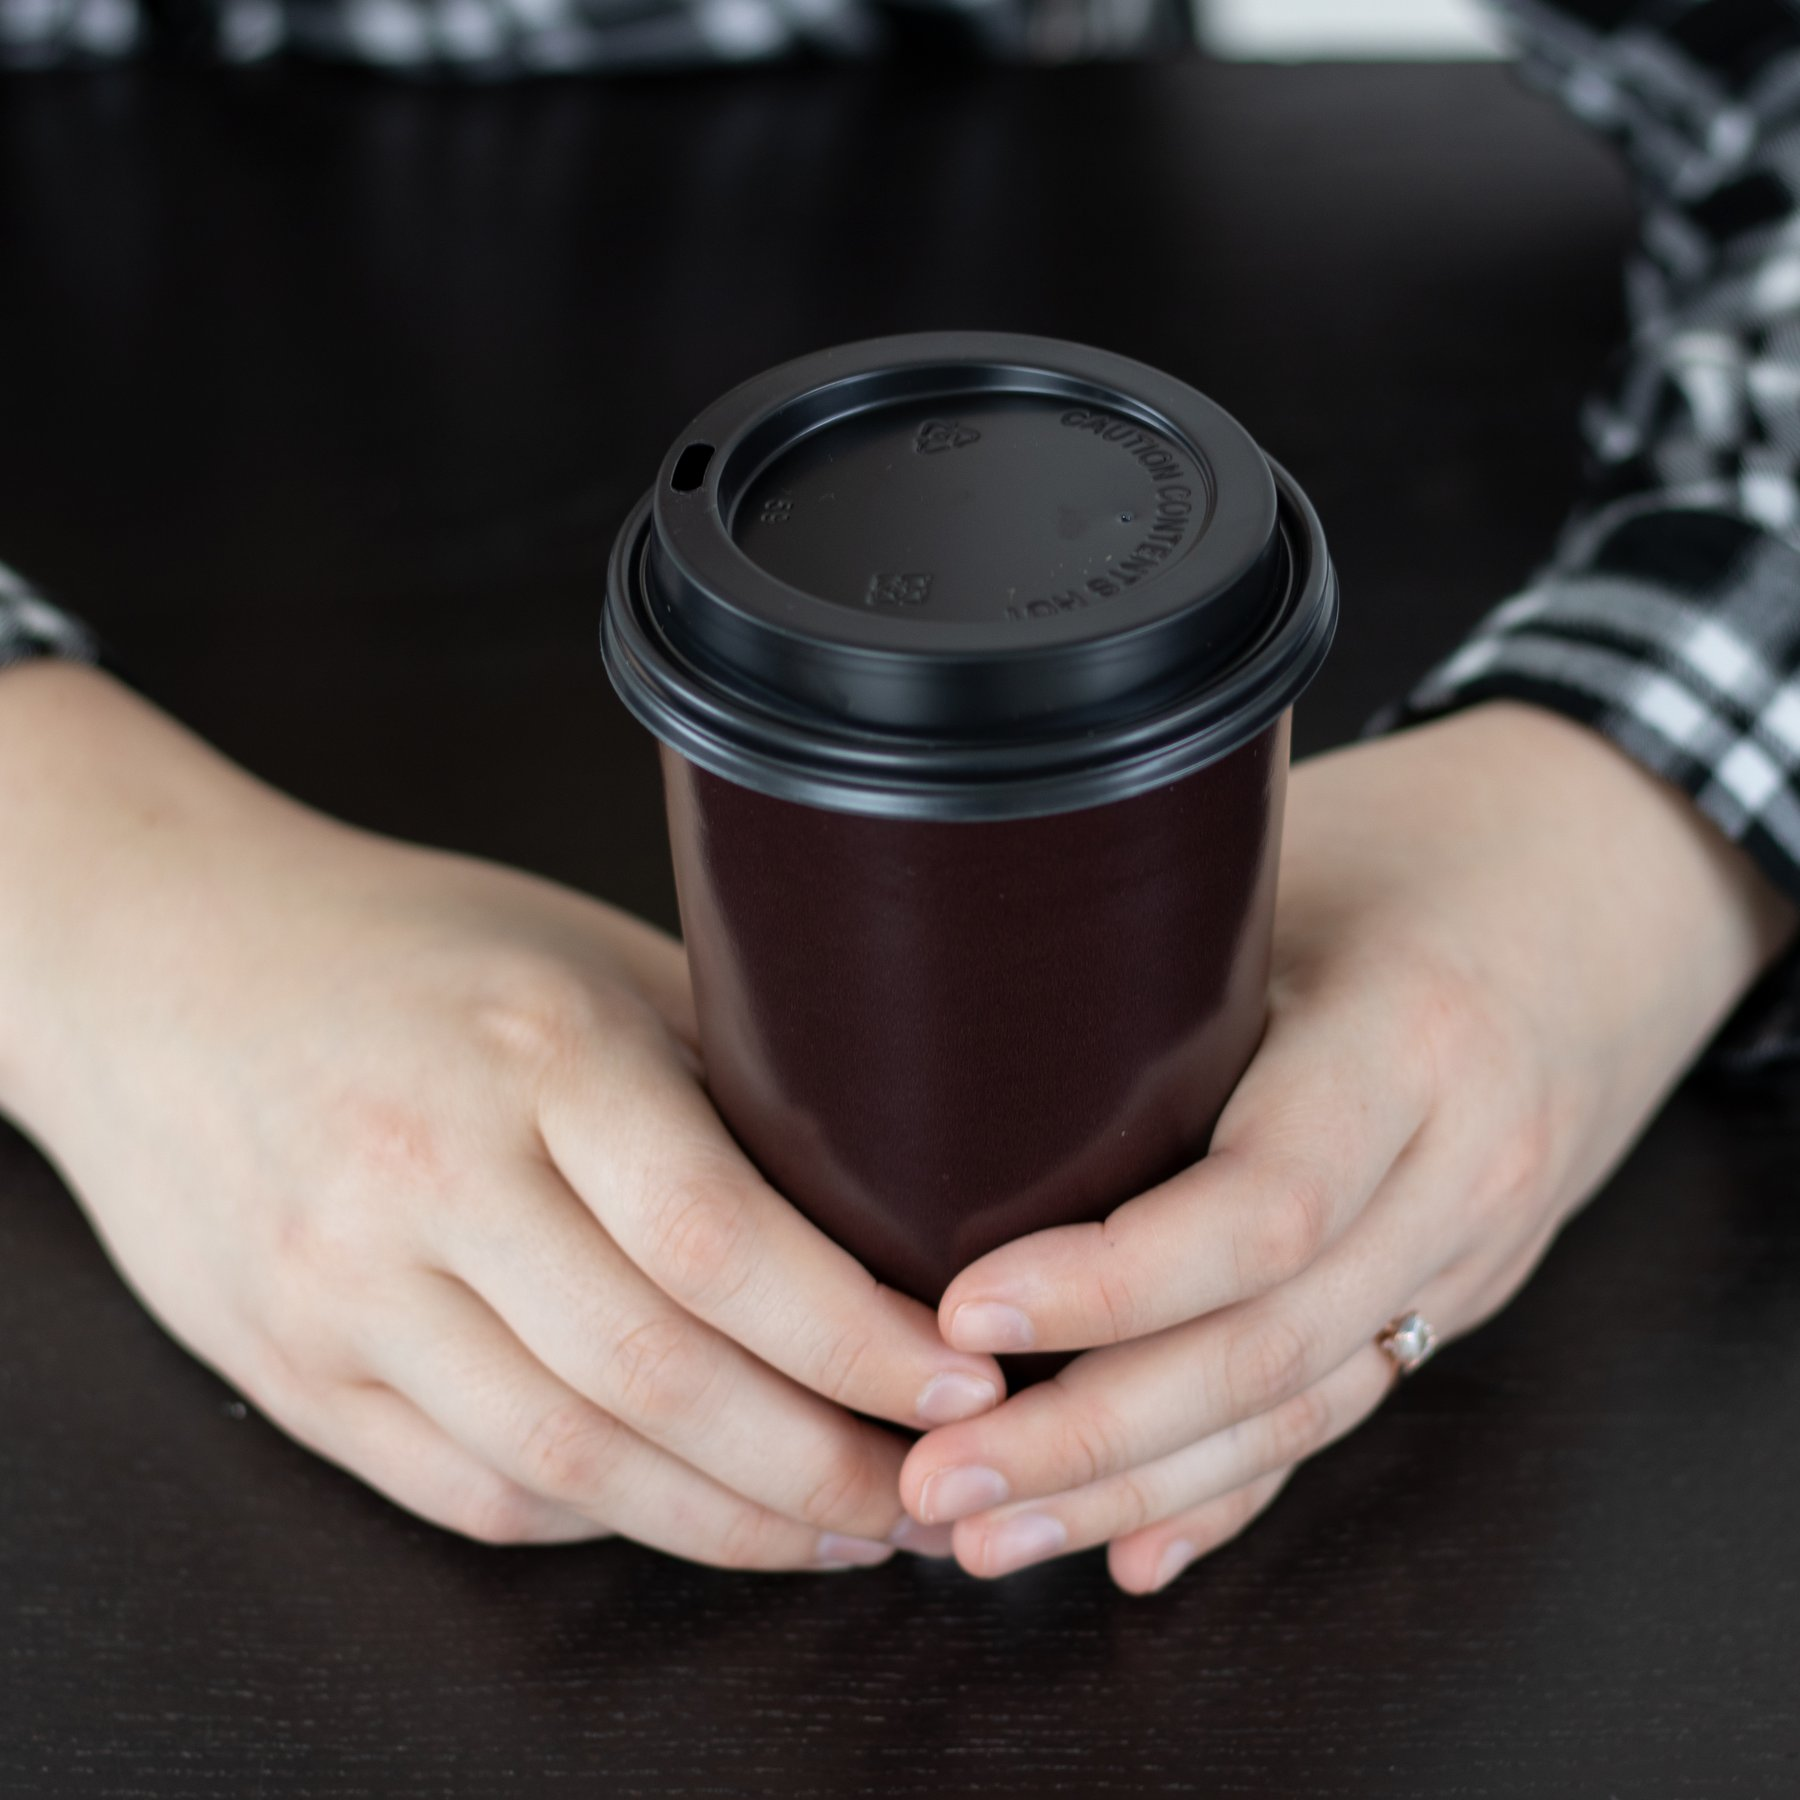 LOOKING FOR INSULATED CUPS AT  YOUR PLACE